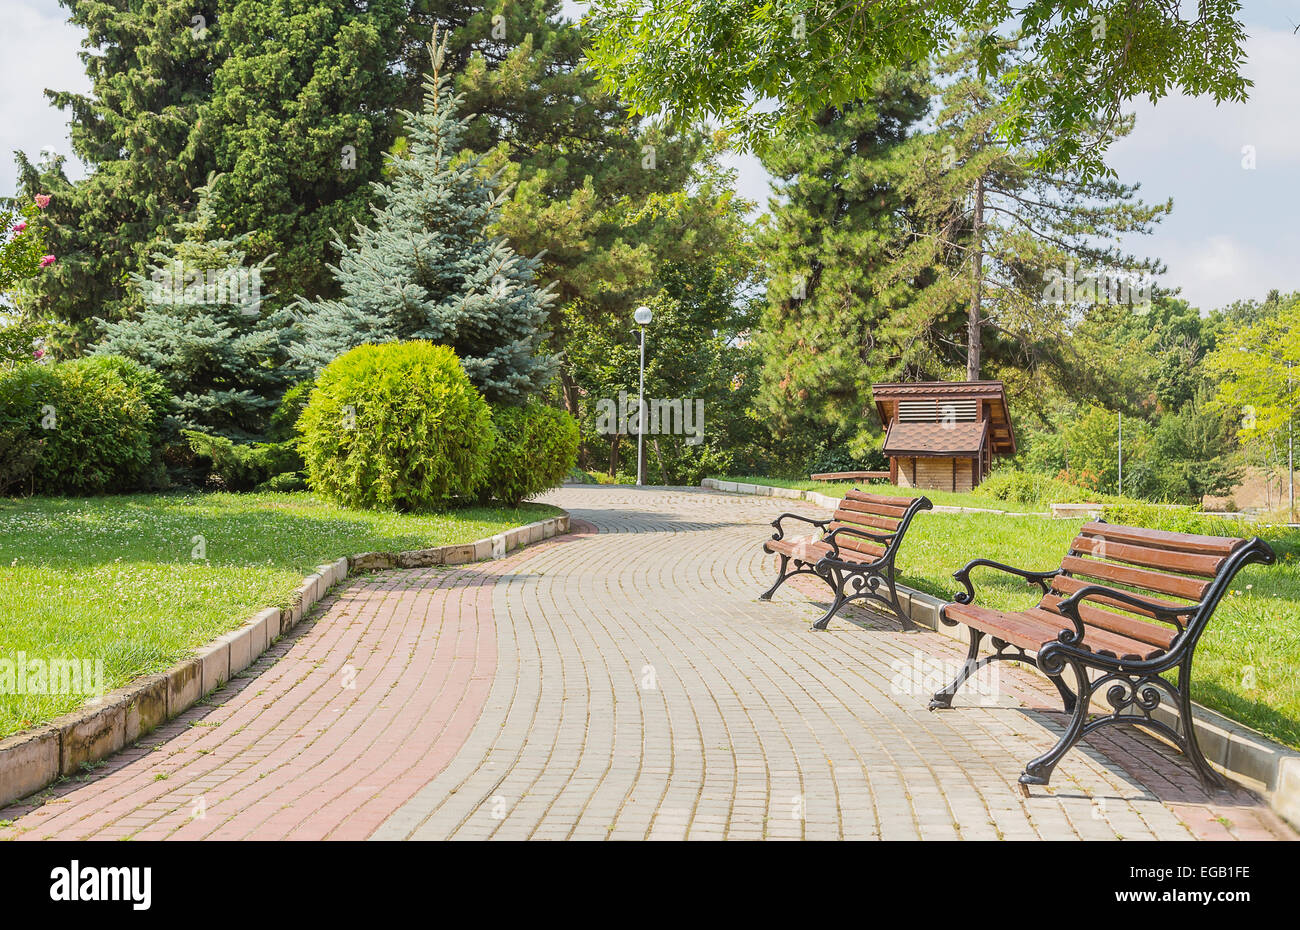 Garden Park Bench Path Pathway Background Stock Photo